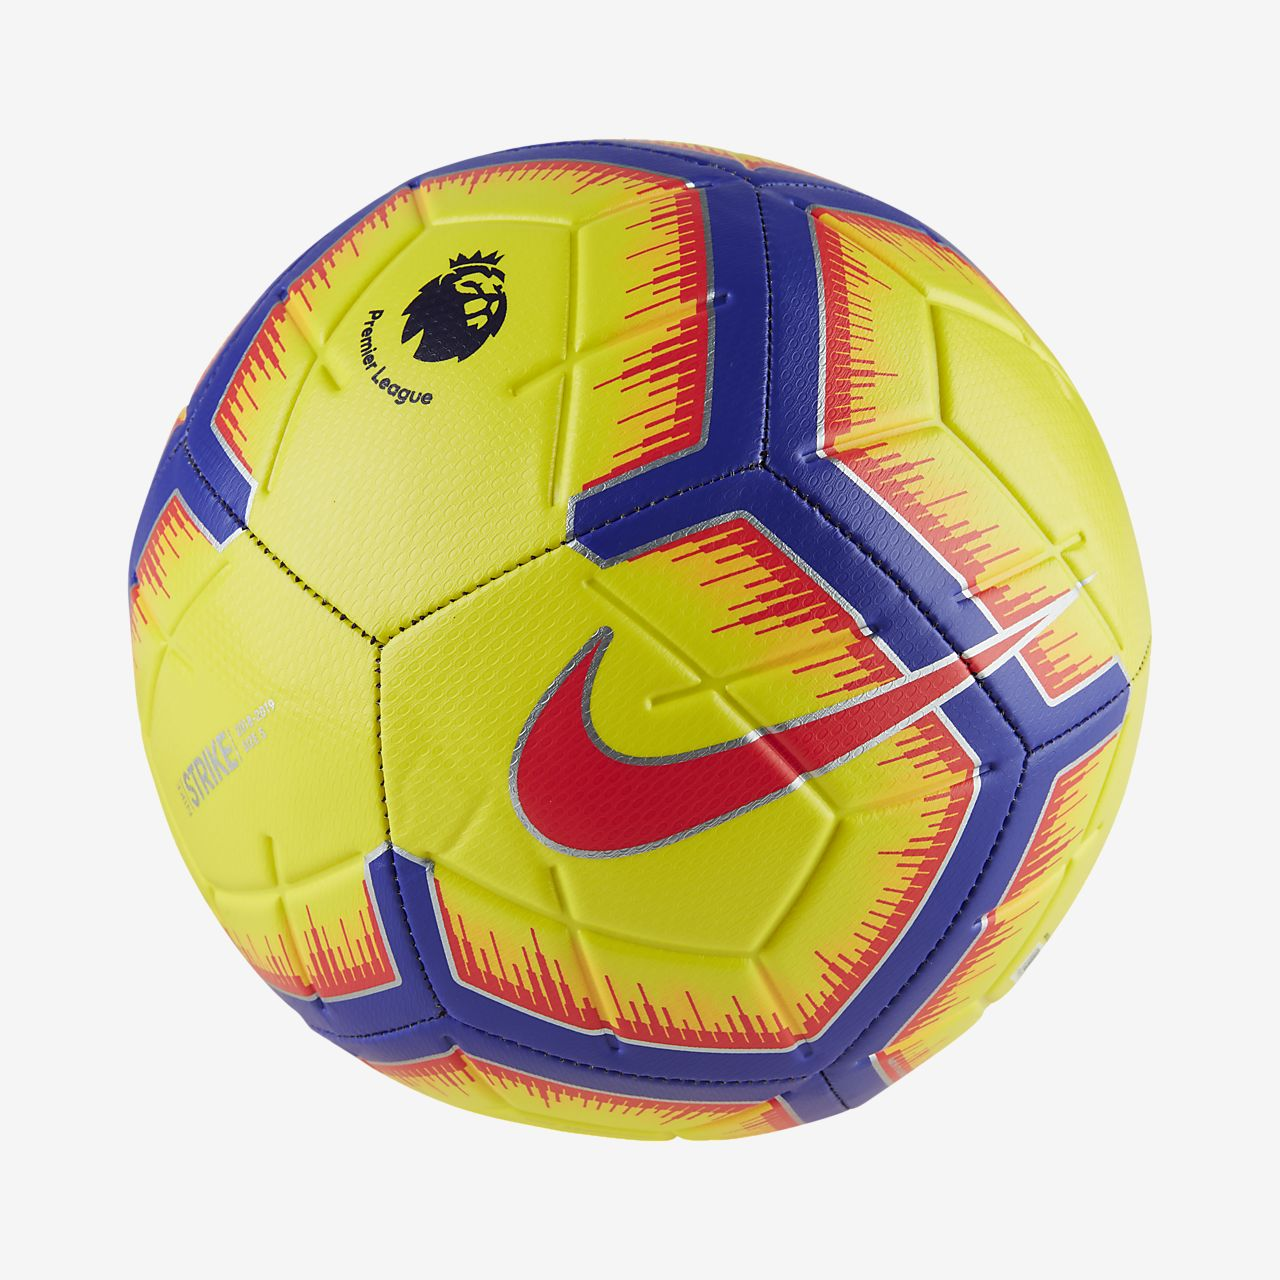 12f1a0e53e59 Premier League Strike Football. Nike.com GB